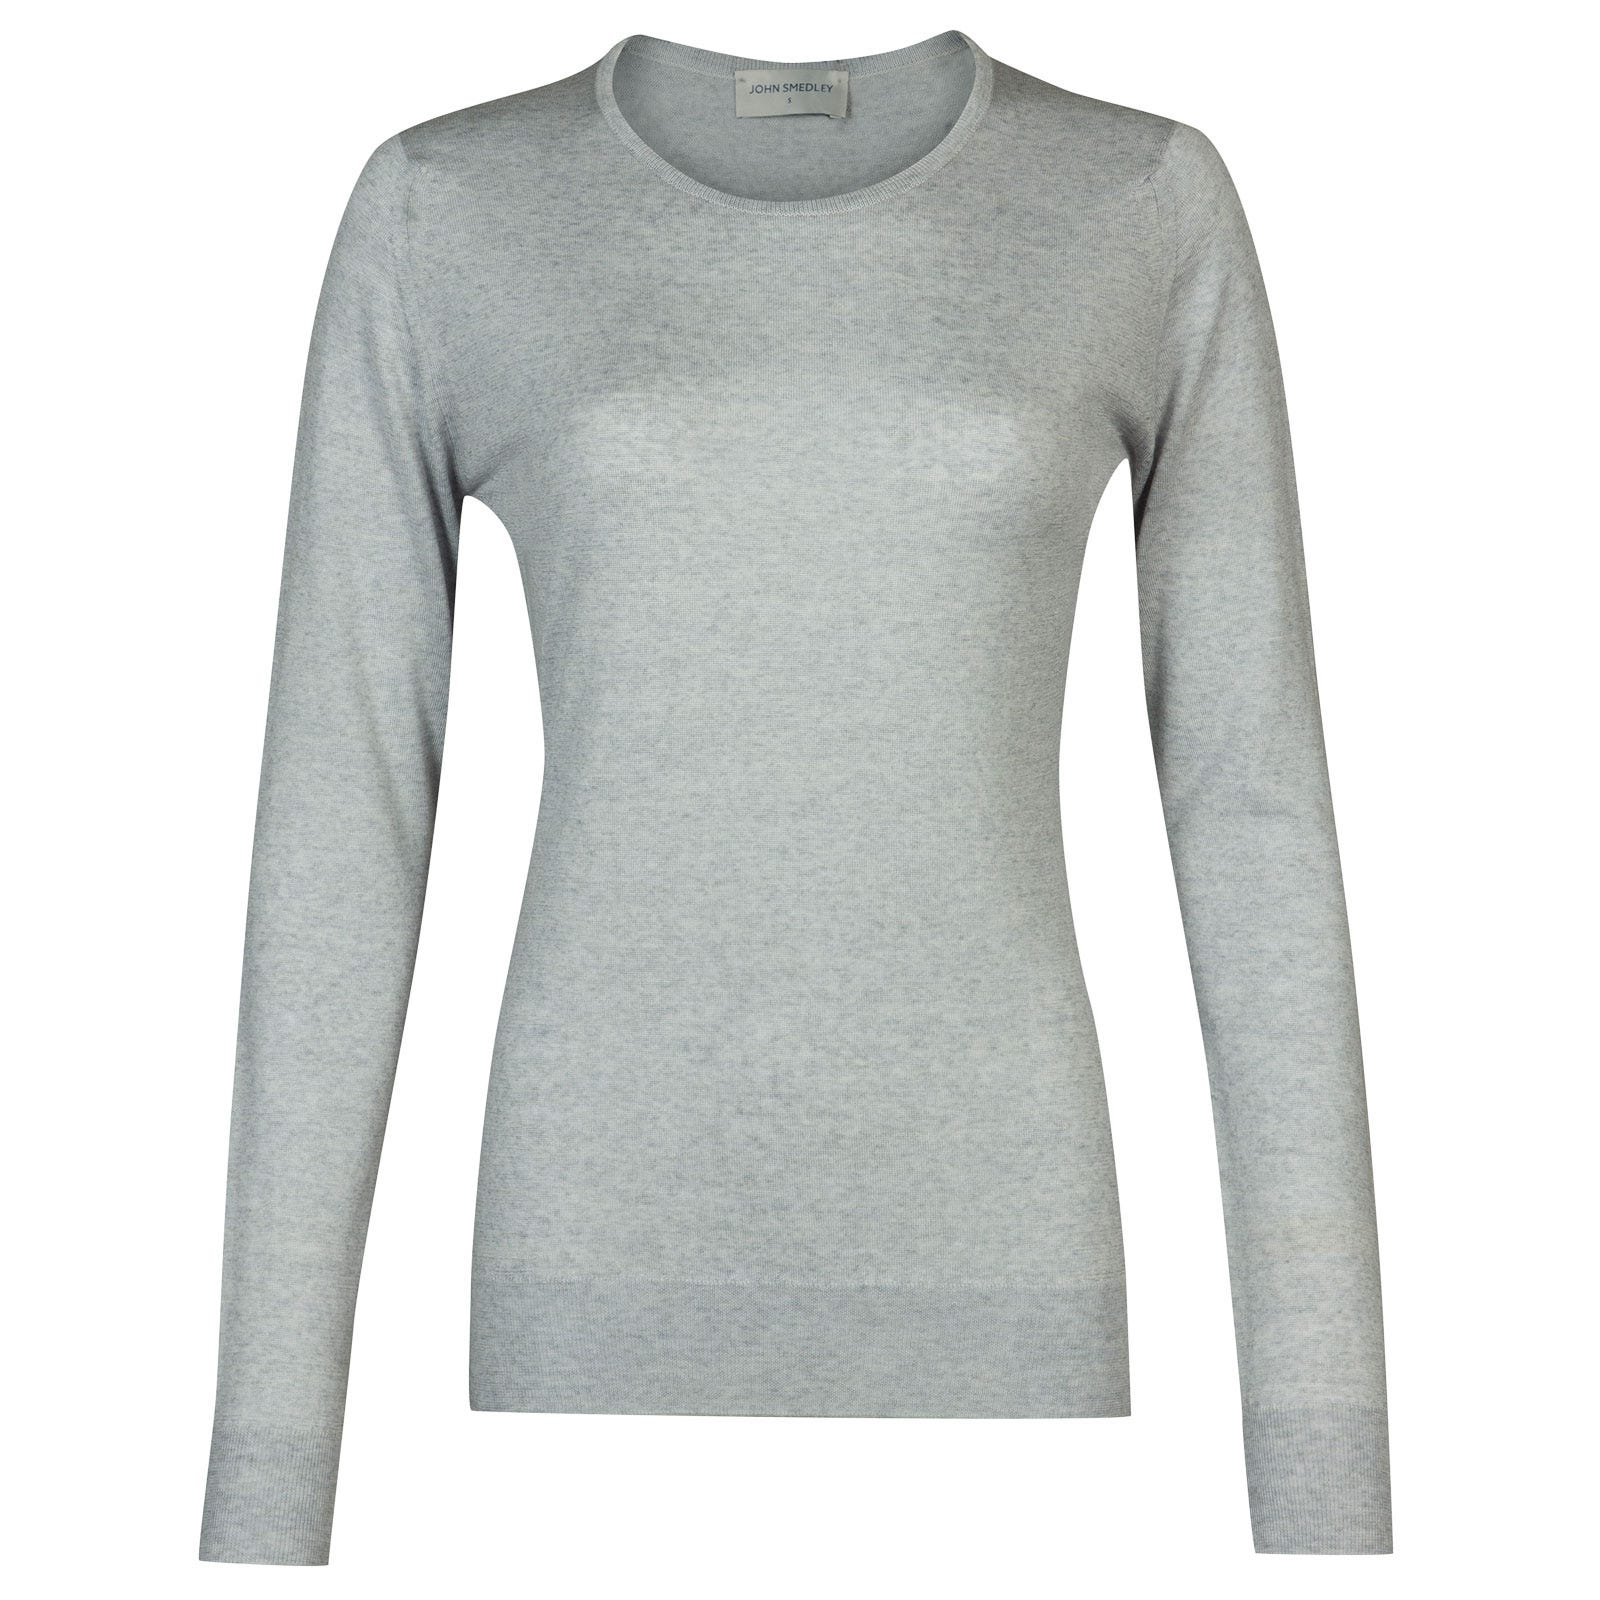 John Smedley geranium Merino Wool Sweater in Bardot Grey-M